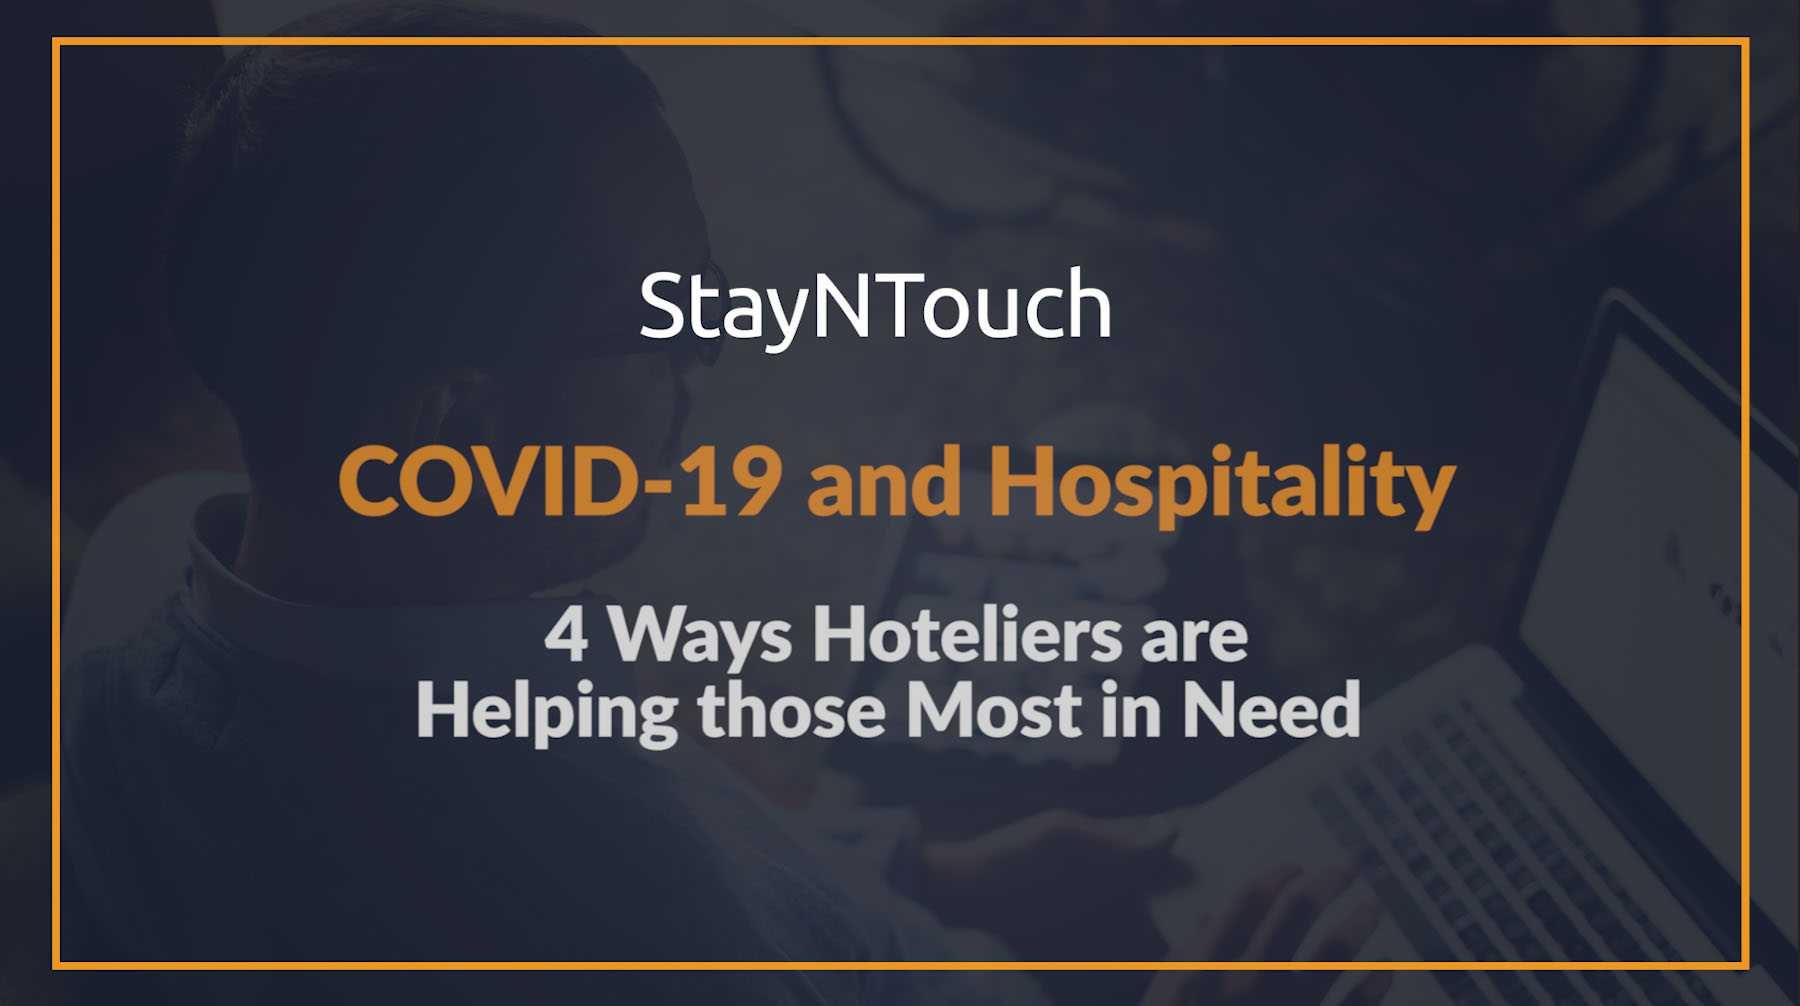 4 Ways Hoteliers Are Helping Those Most in Need